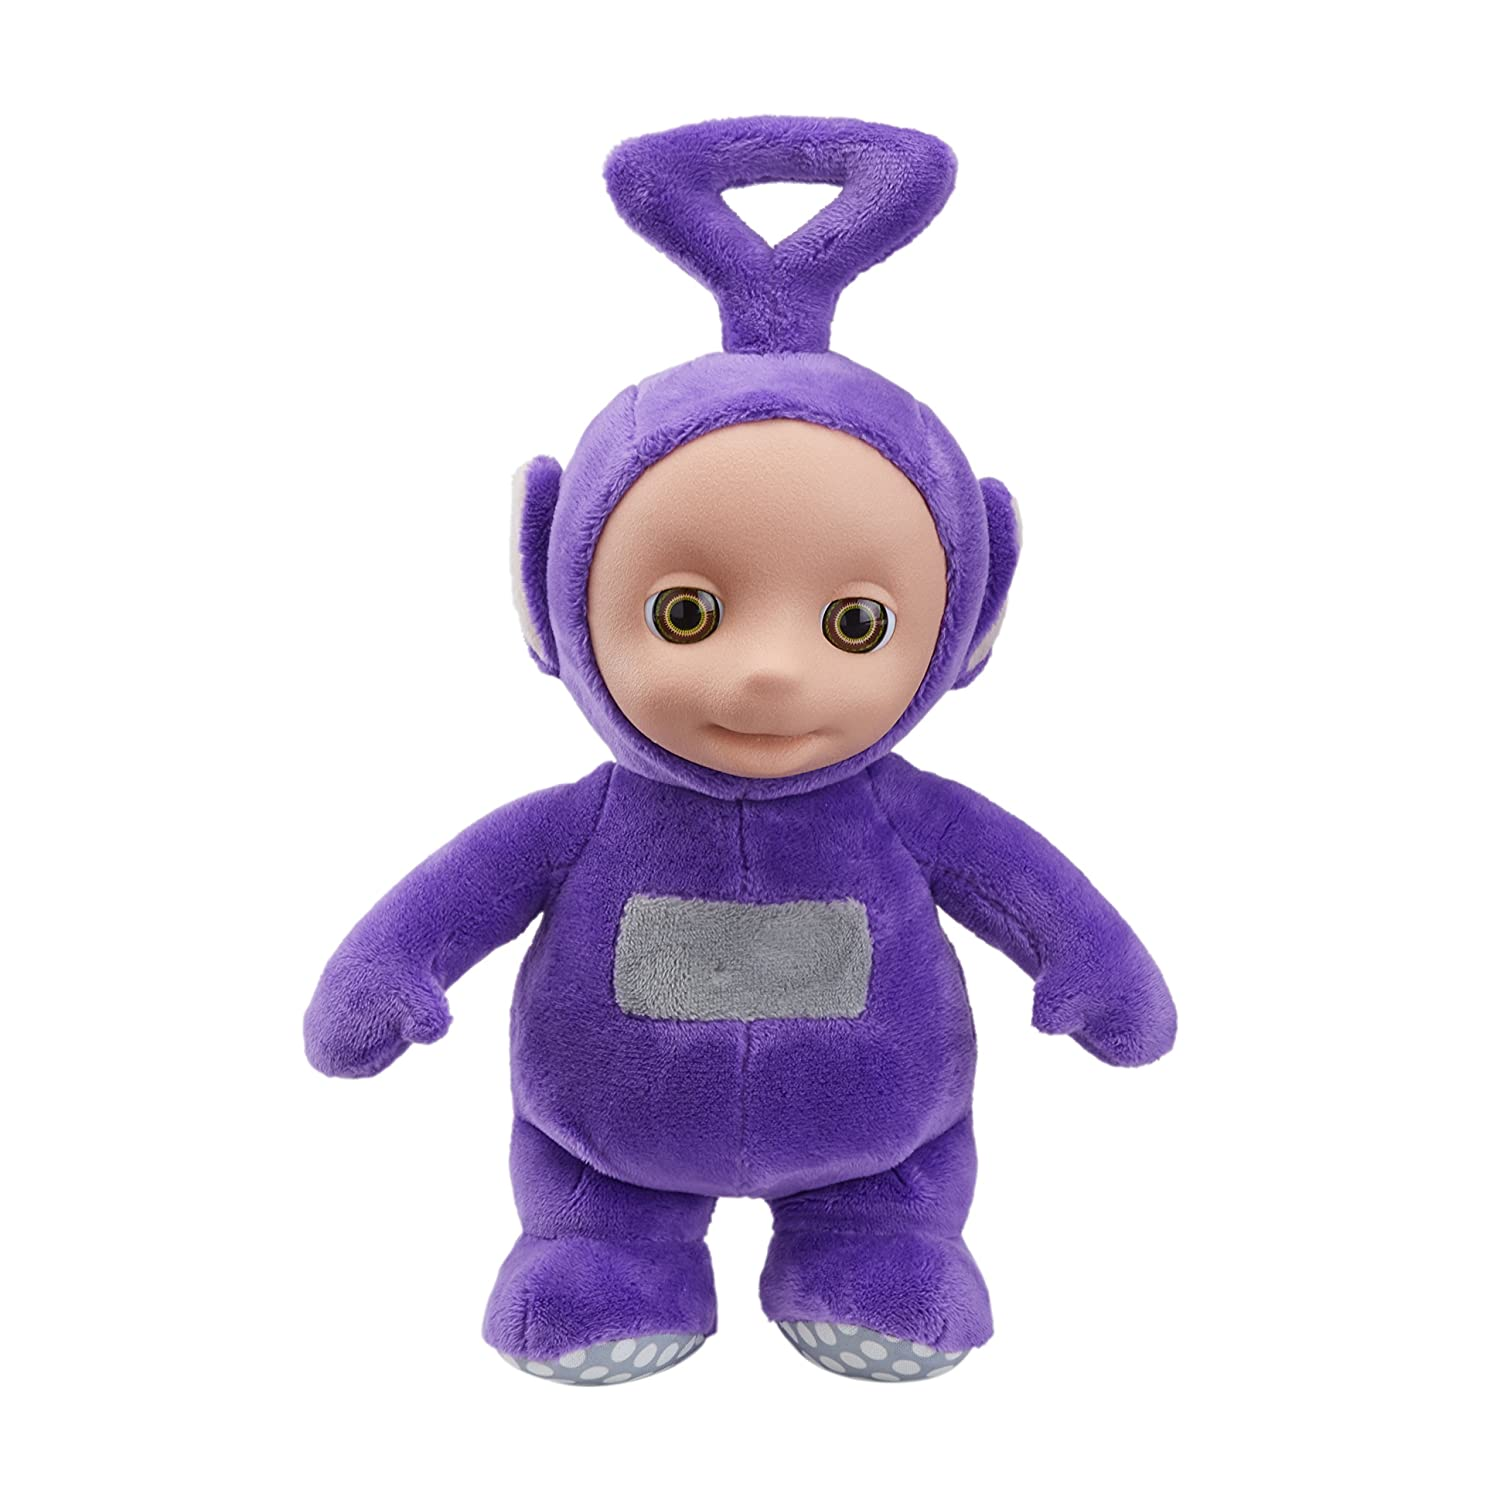 Teletubbies Talking Tinky Winky - Peluche Suave, Dise&ntilde, Color Morado Character Options 06109